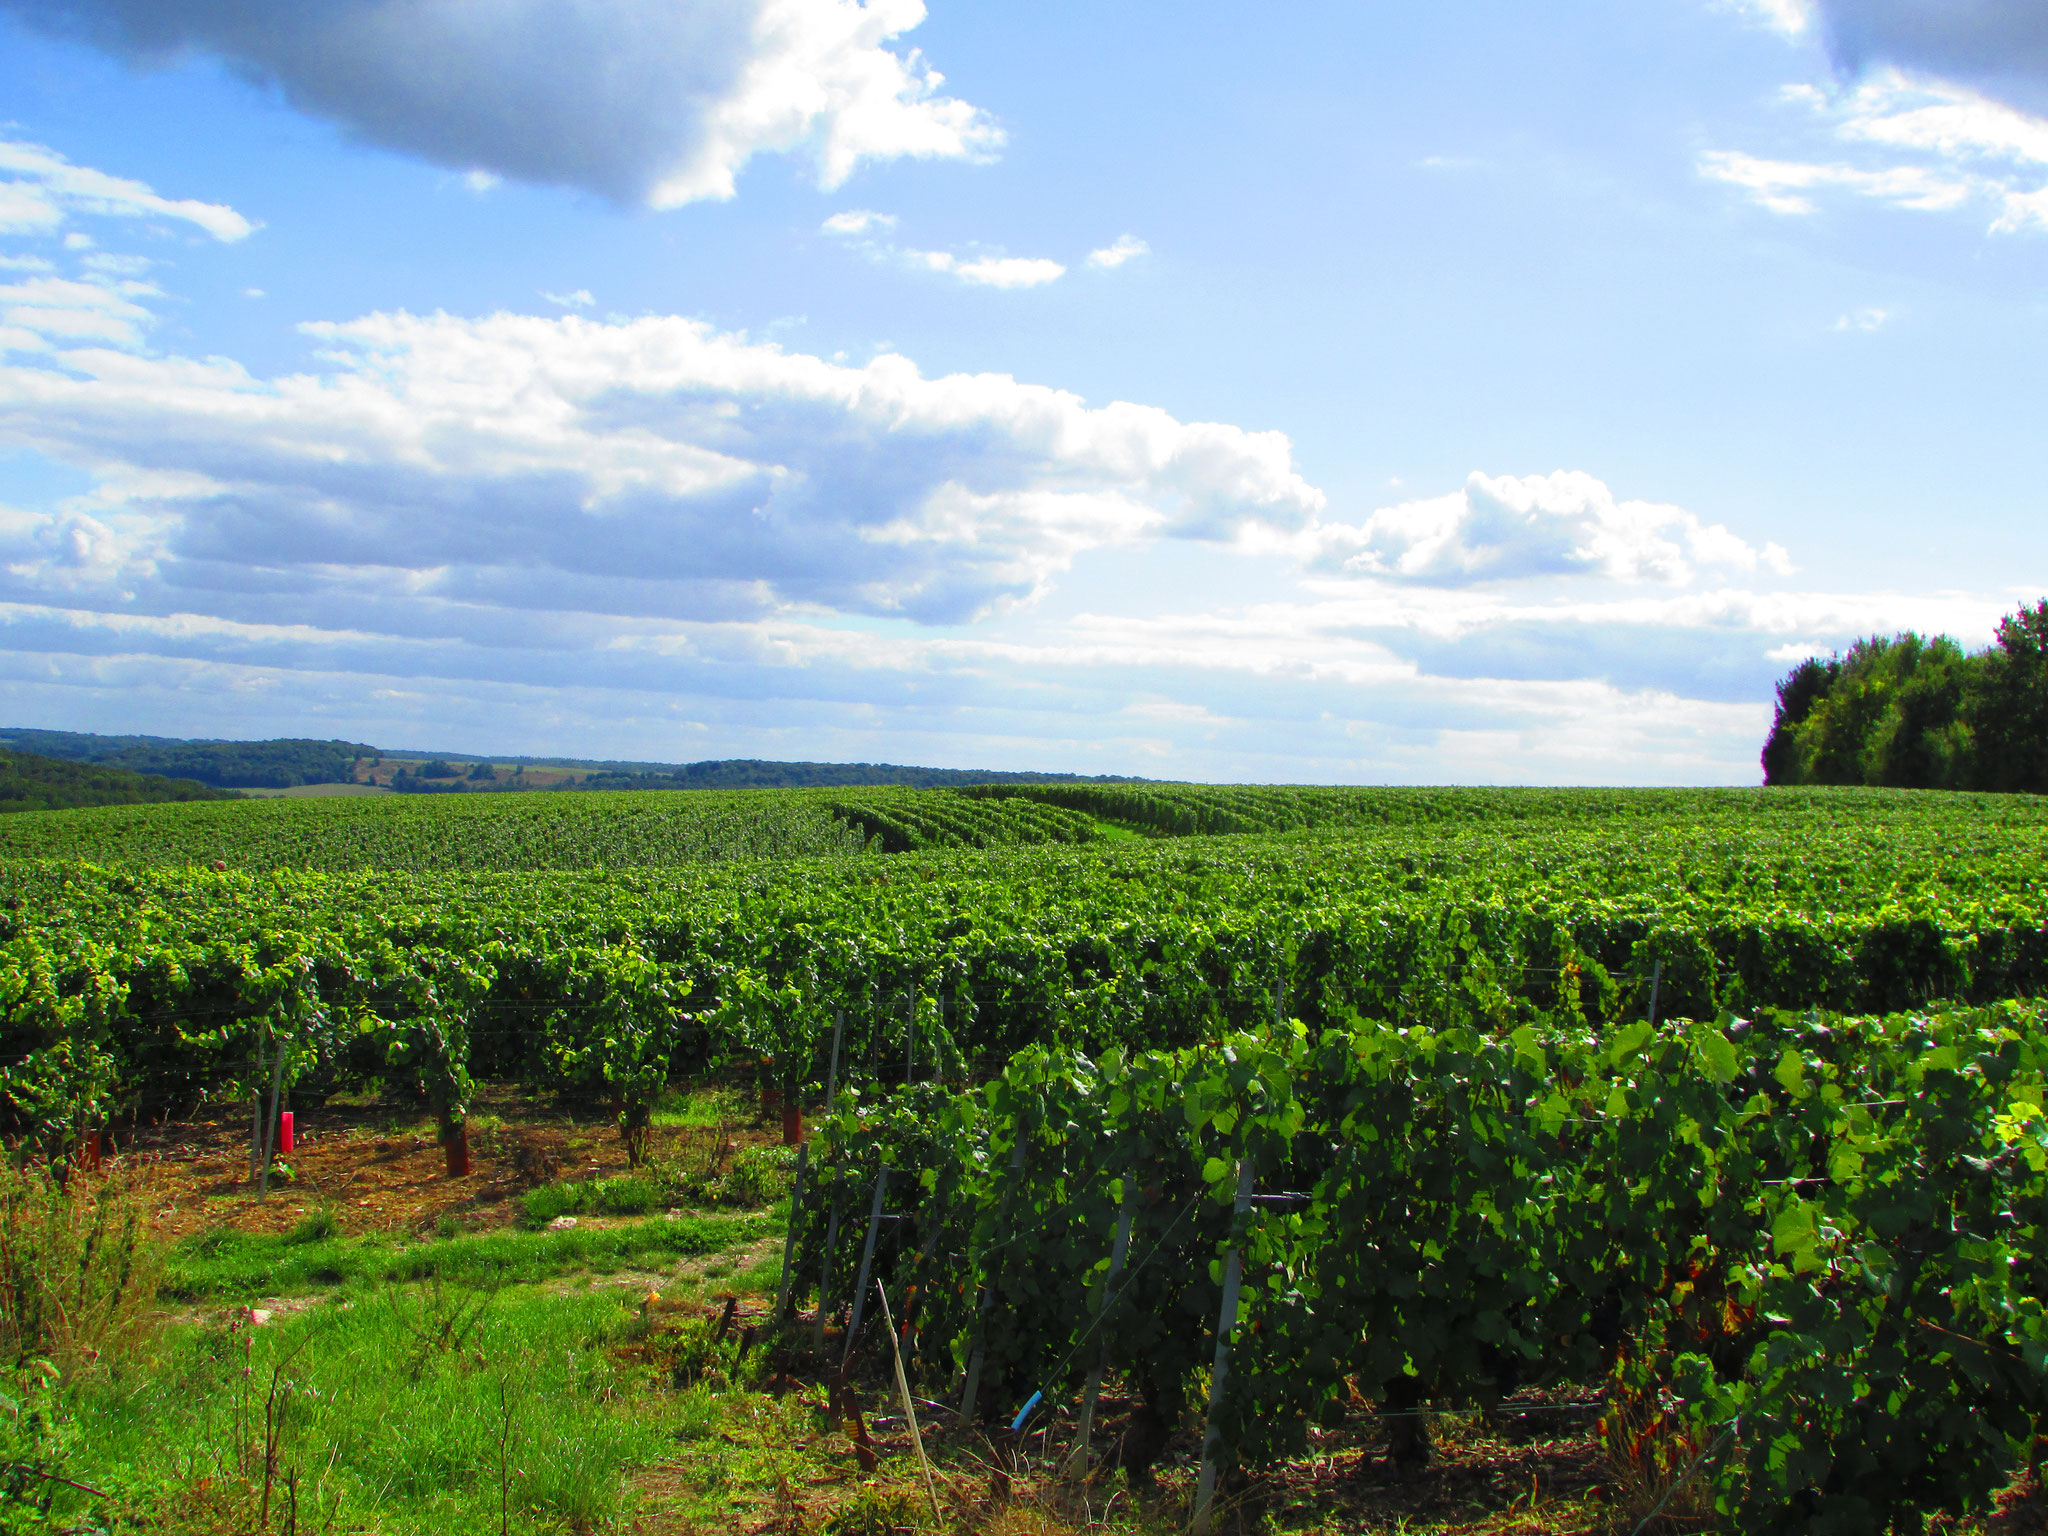 Our vineyard expand on 5 hectares